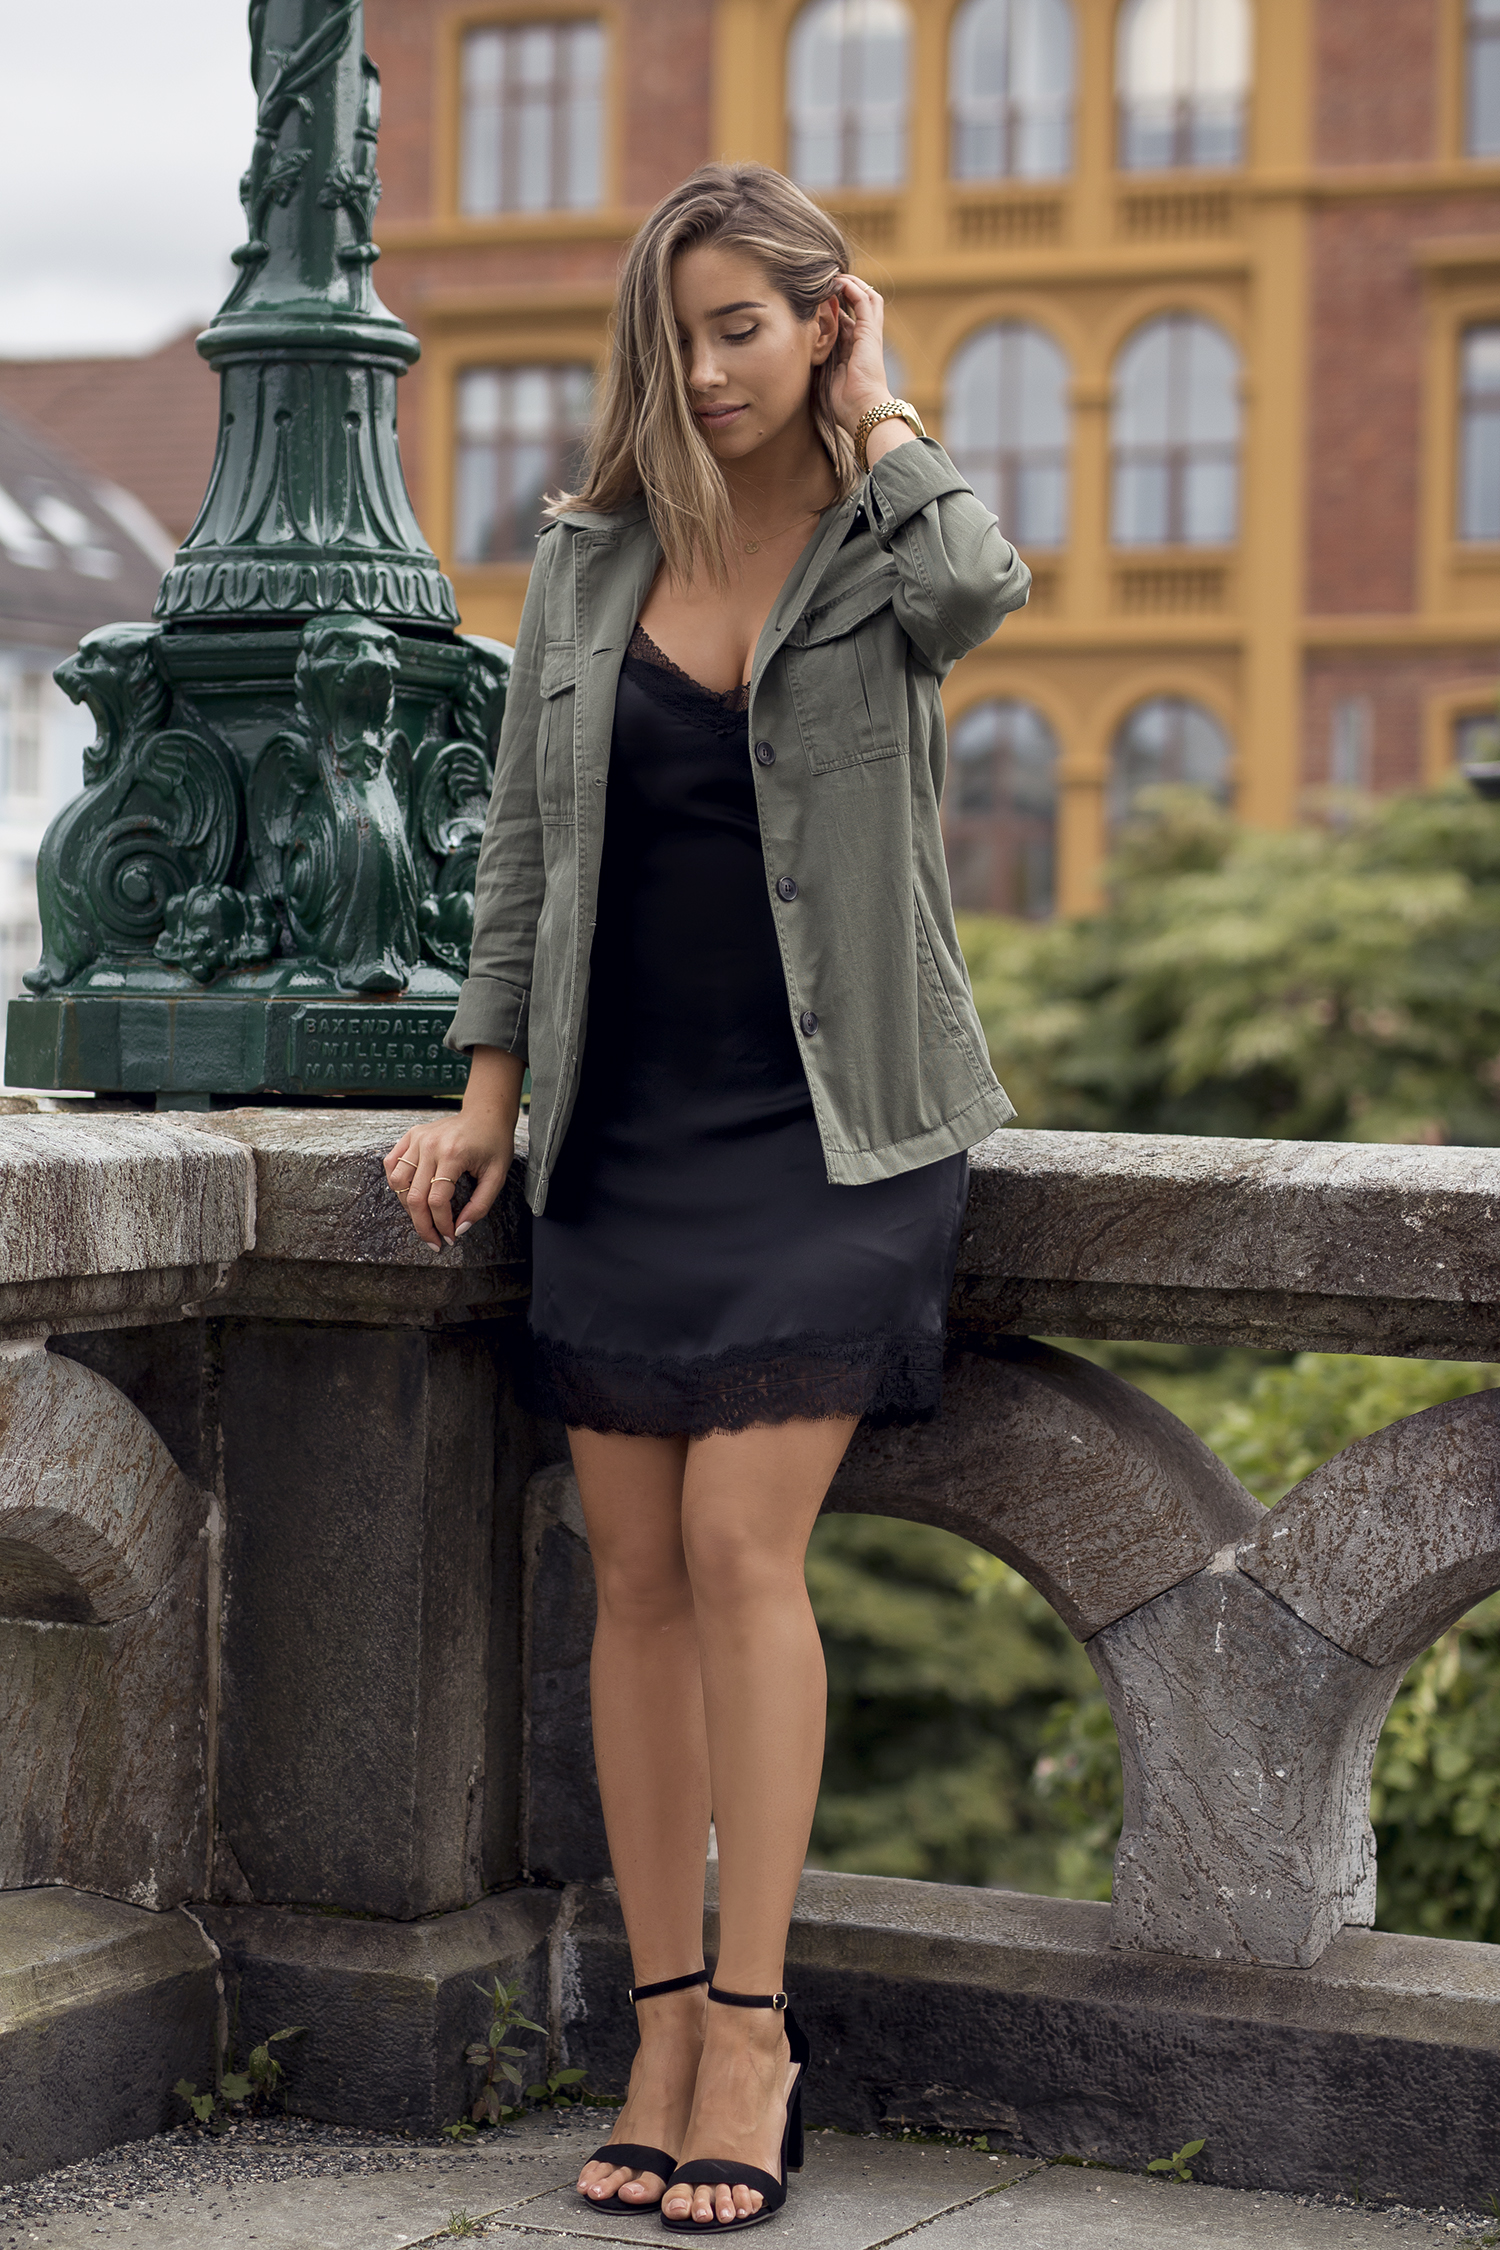 Emilie Tømmerberg proves that bustier women can still wear the slip dress well in this fabulous little black number. Coupled with the jacket, it's ideal for Autumn parties. No brands specified.